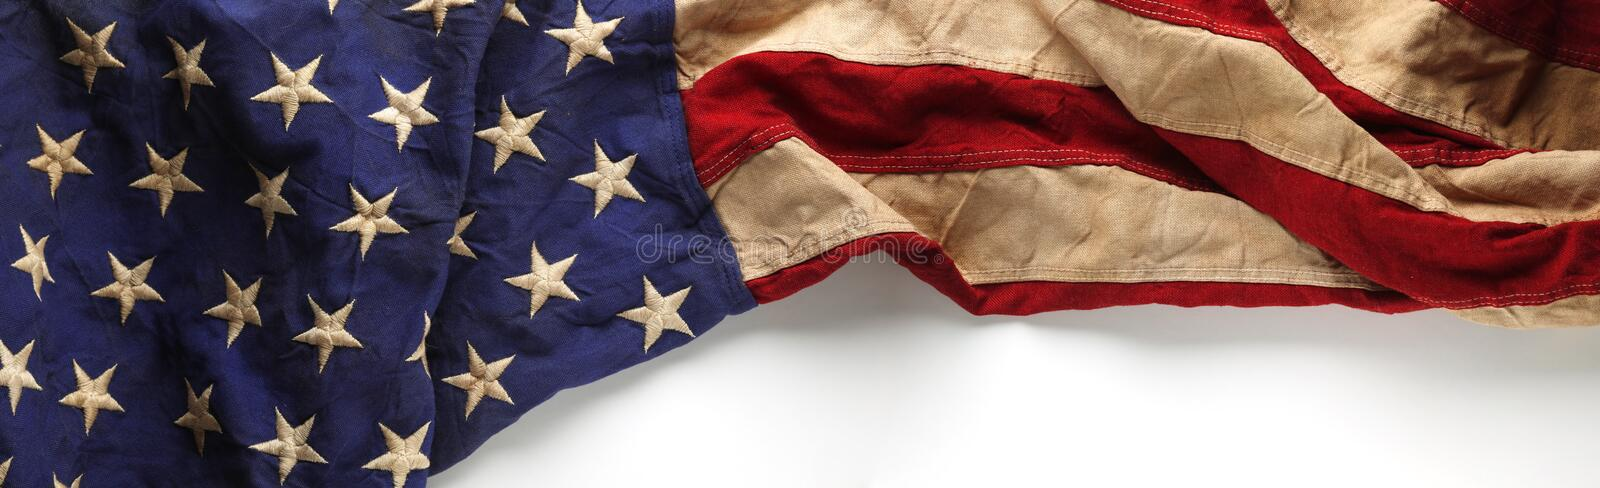 Vintage American flag for Memorial day or Veteran`s day background. Vintage red, white, and blue American flag for Memorial day or Veteran`s day background stock image